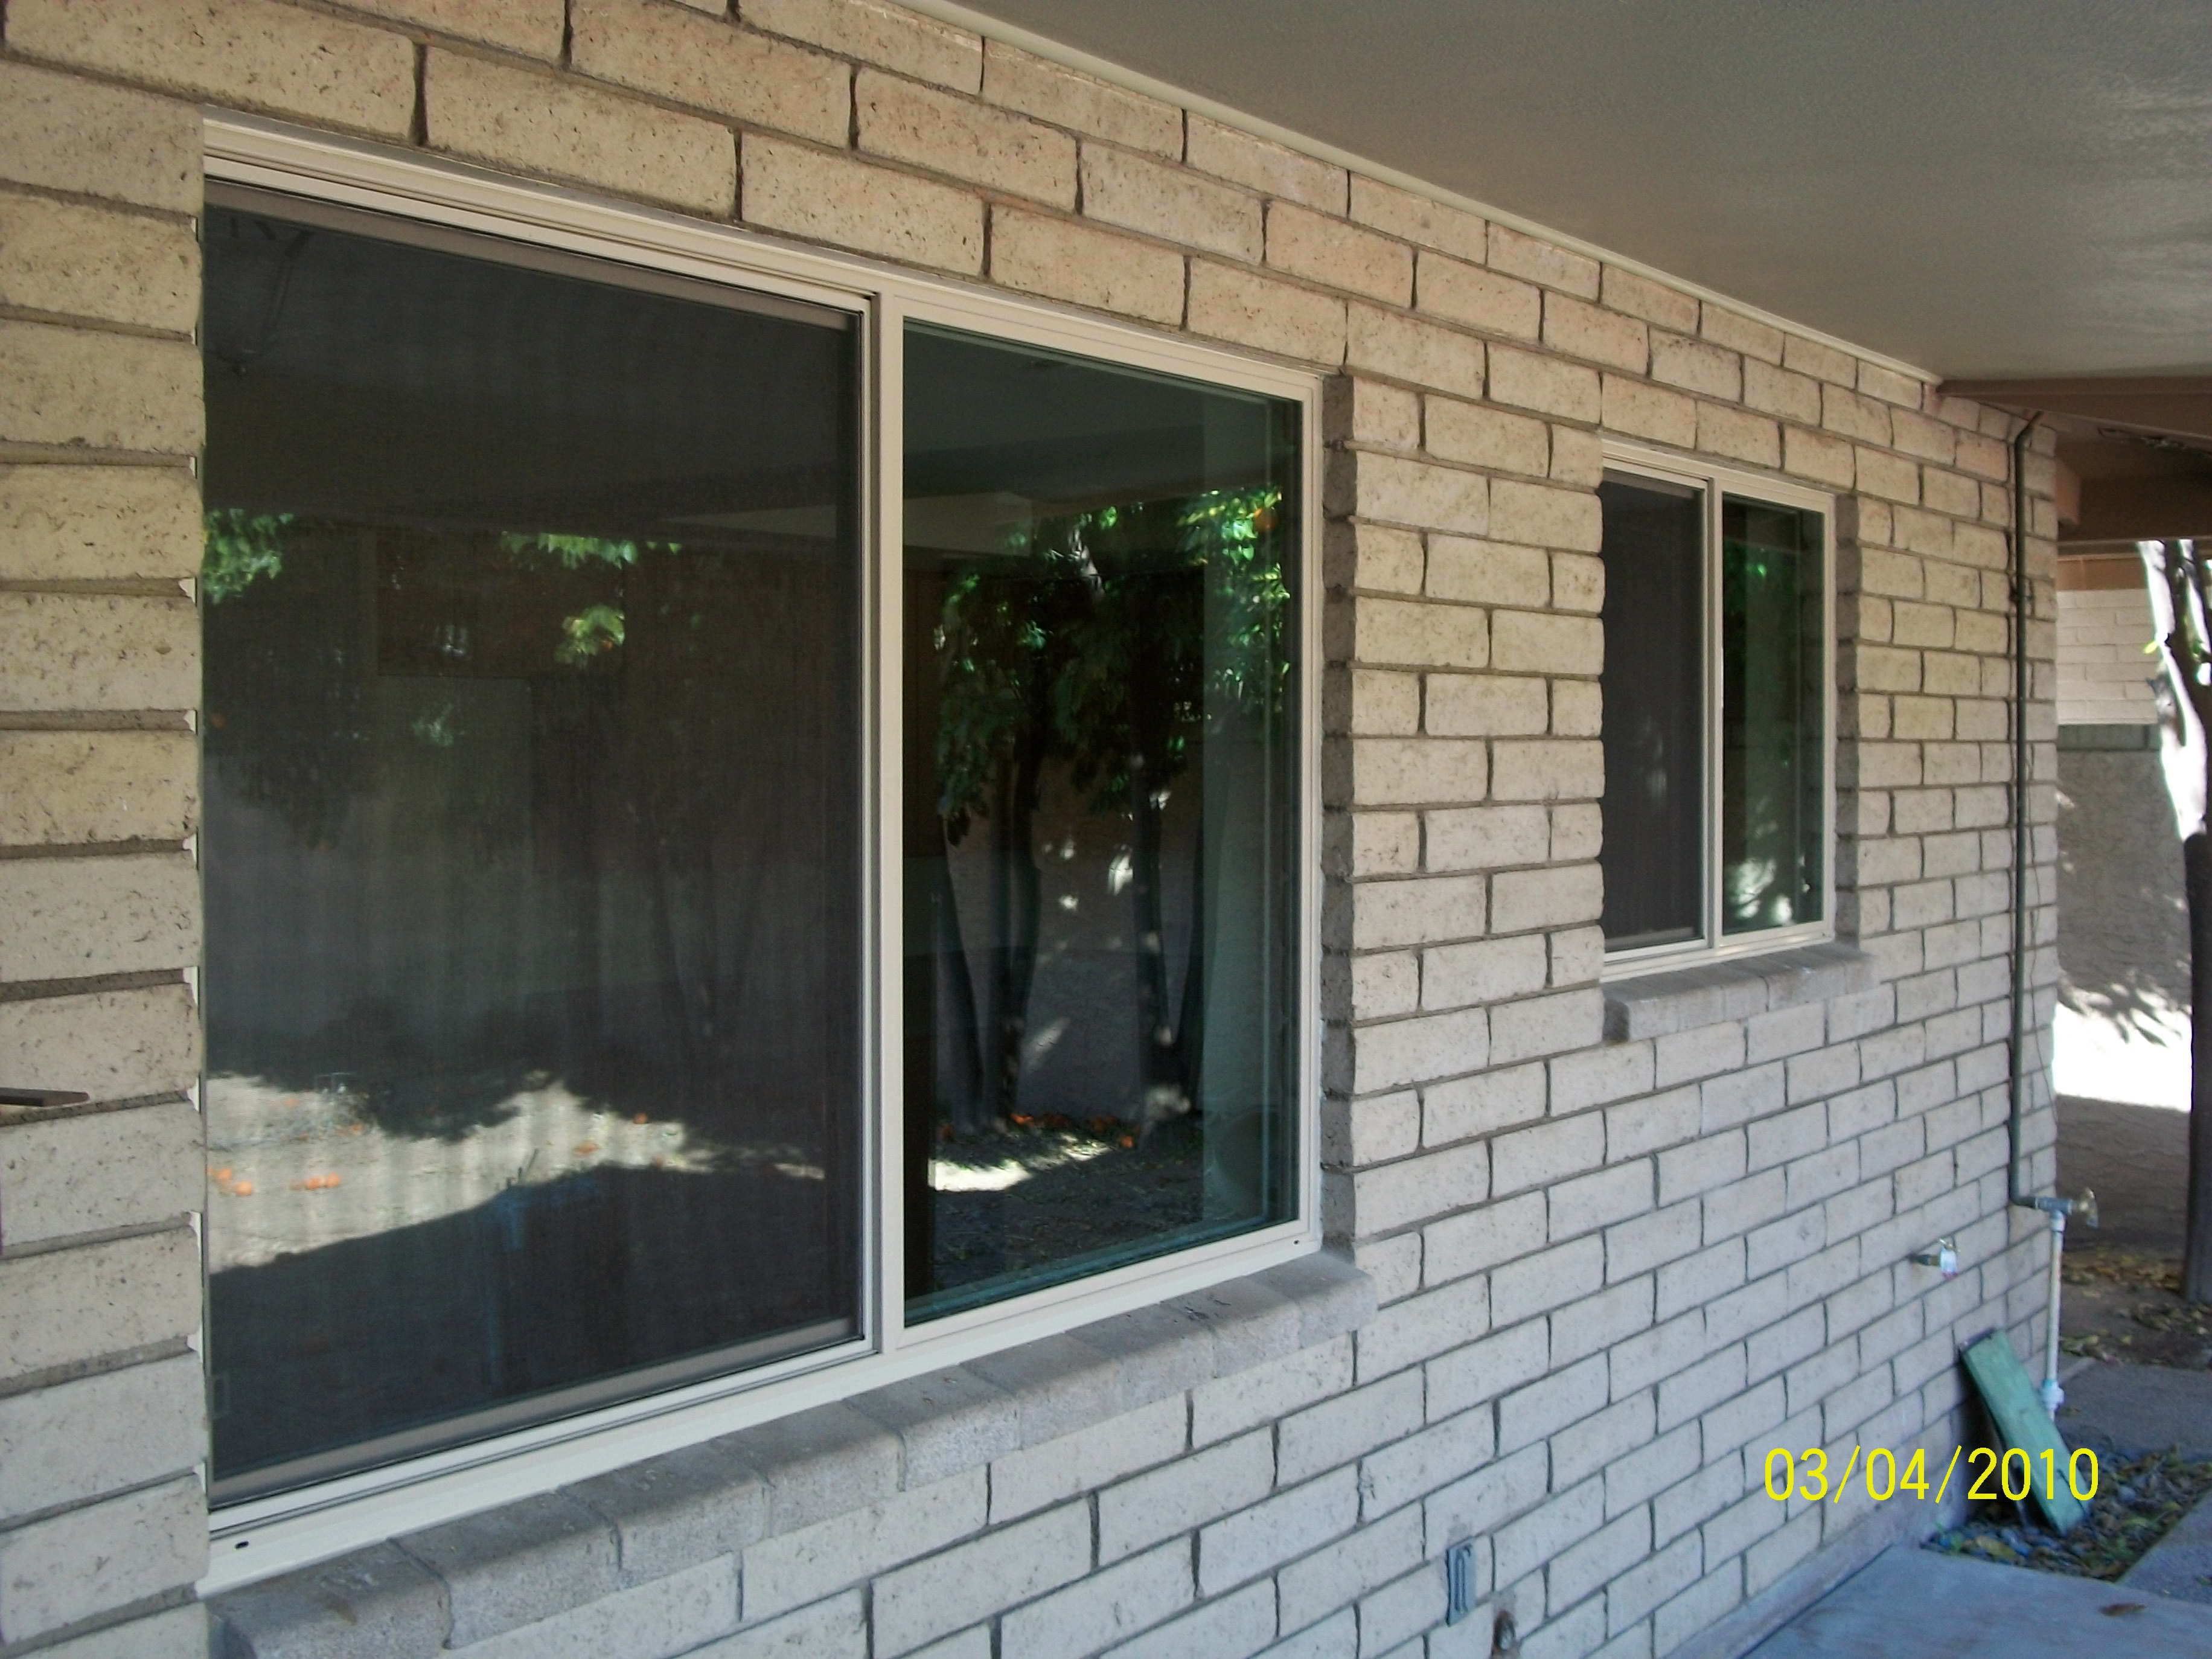 2748 #7D694E Arizona's Best Windows. Quality Replacement Windows & Doors picture/photo Best Quality Doors 39593664